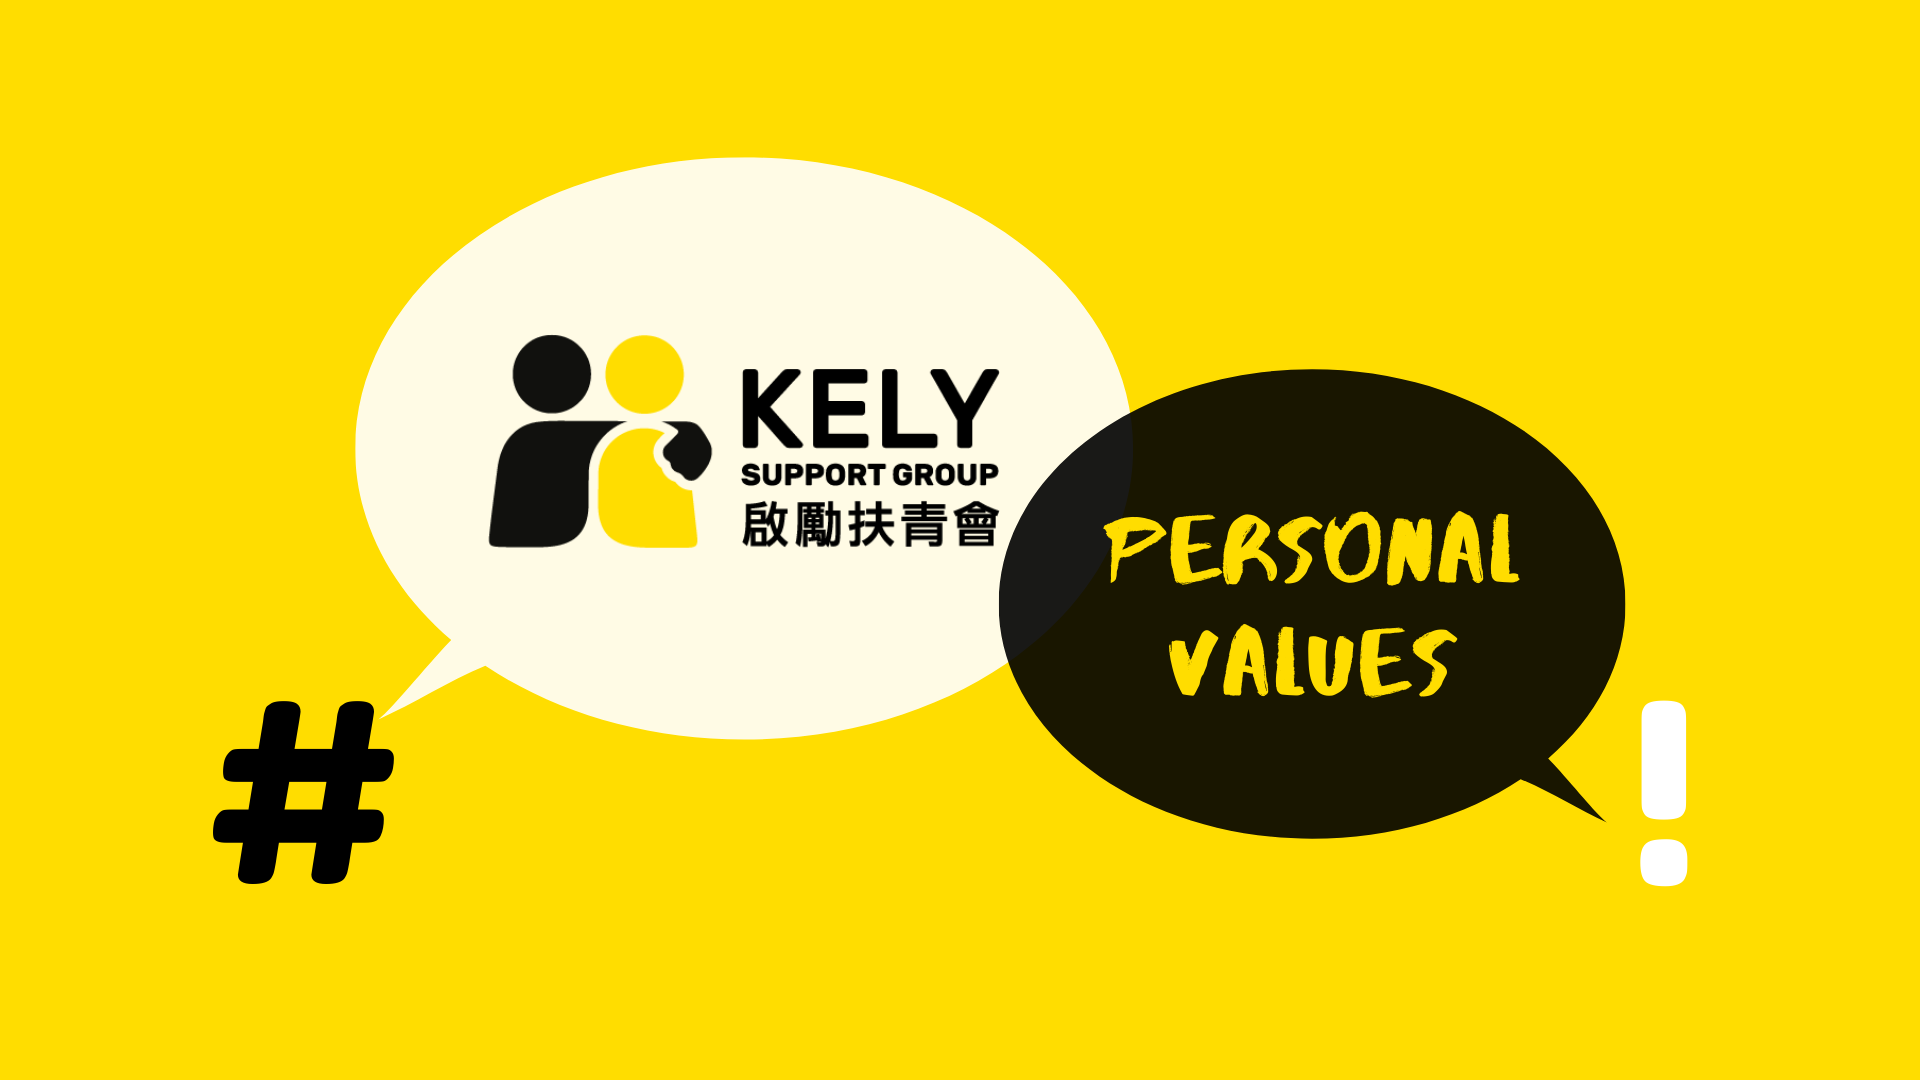 Personal-value.png#asset:2857